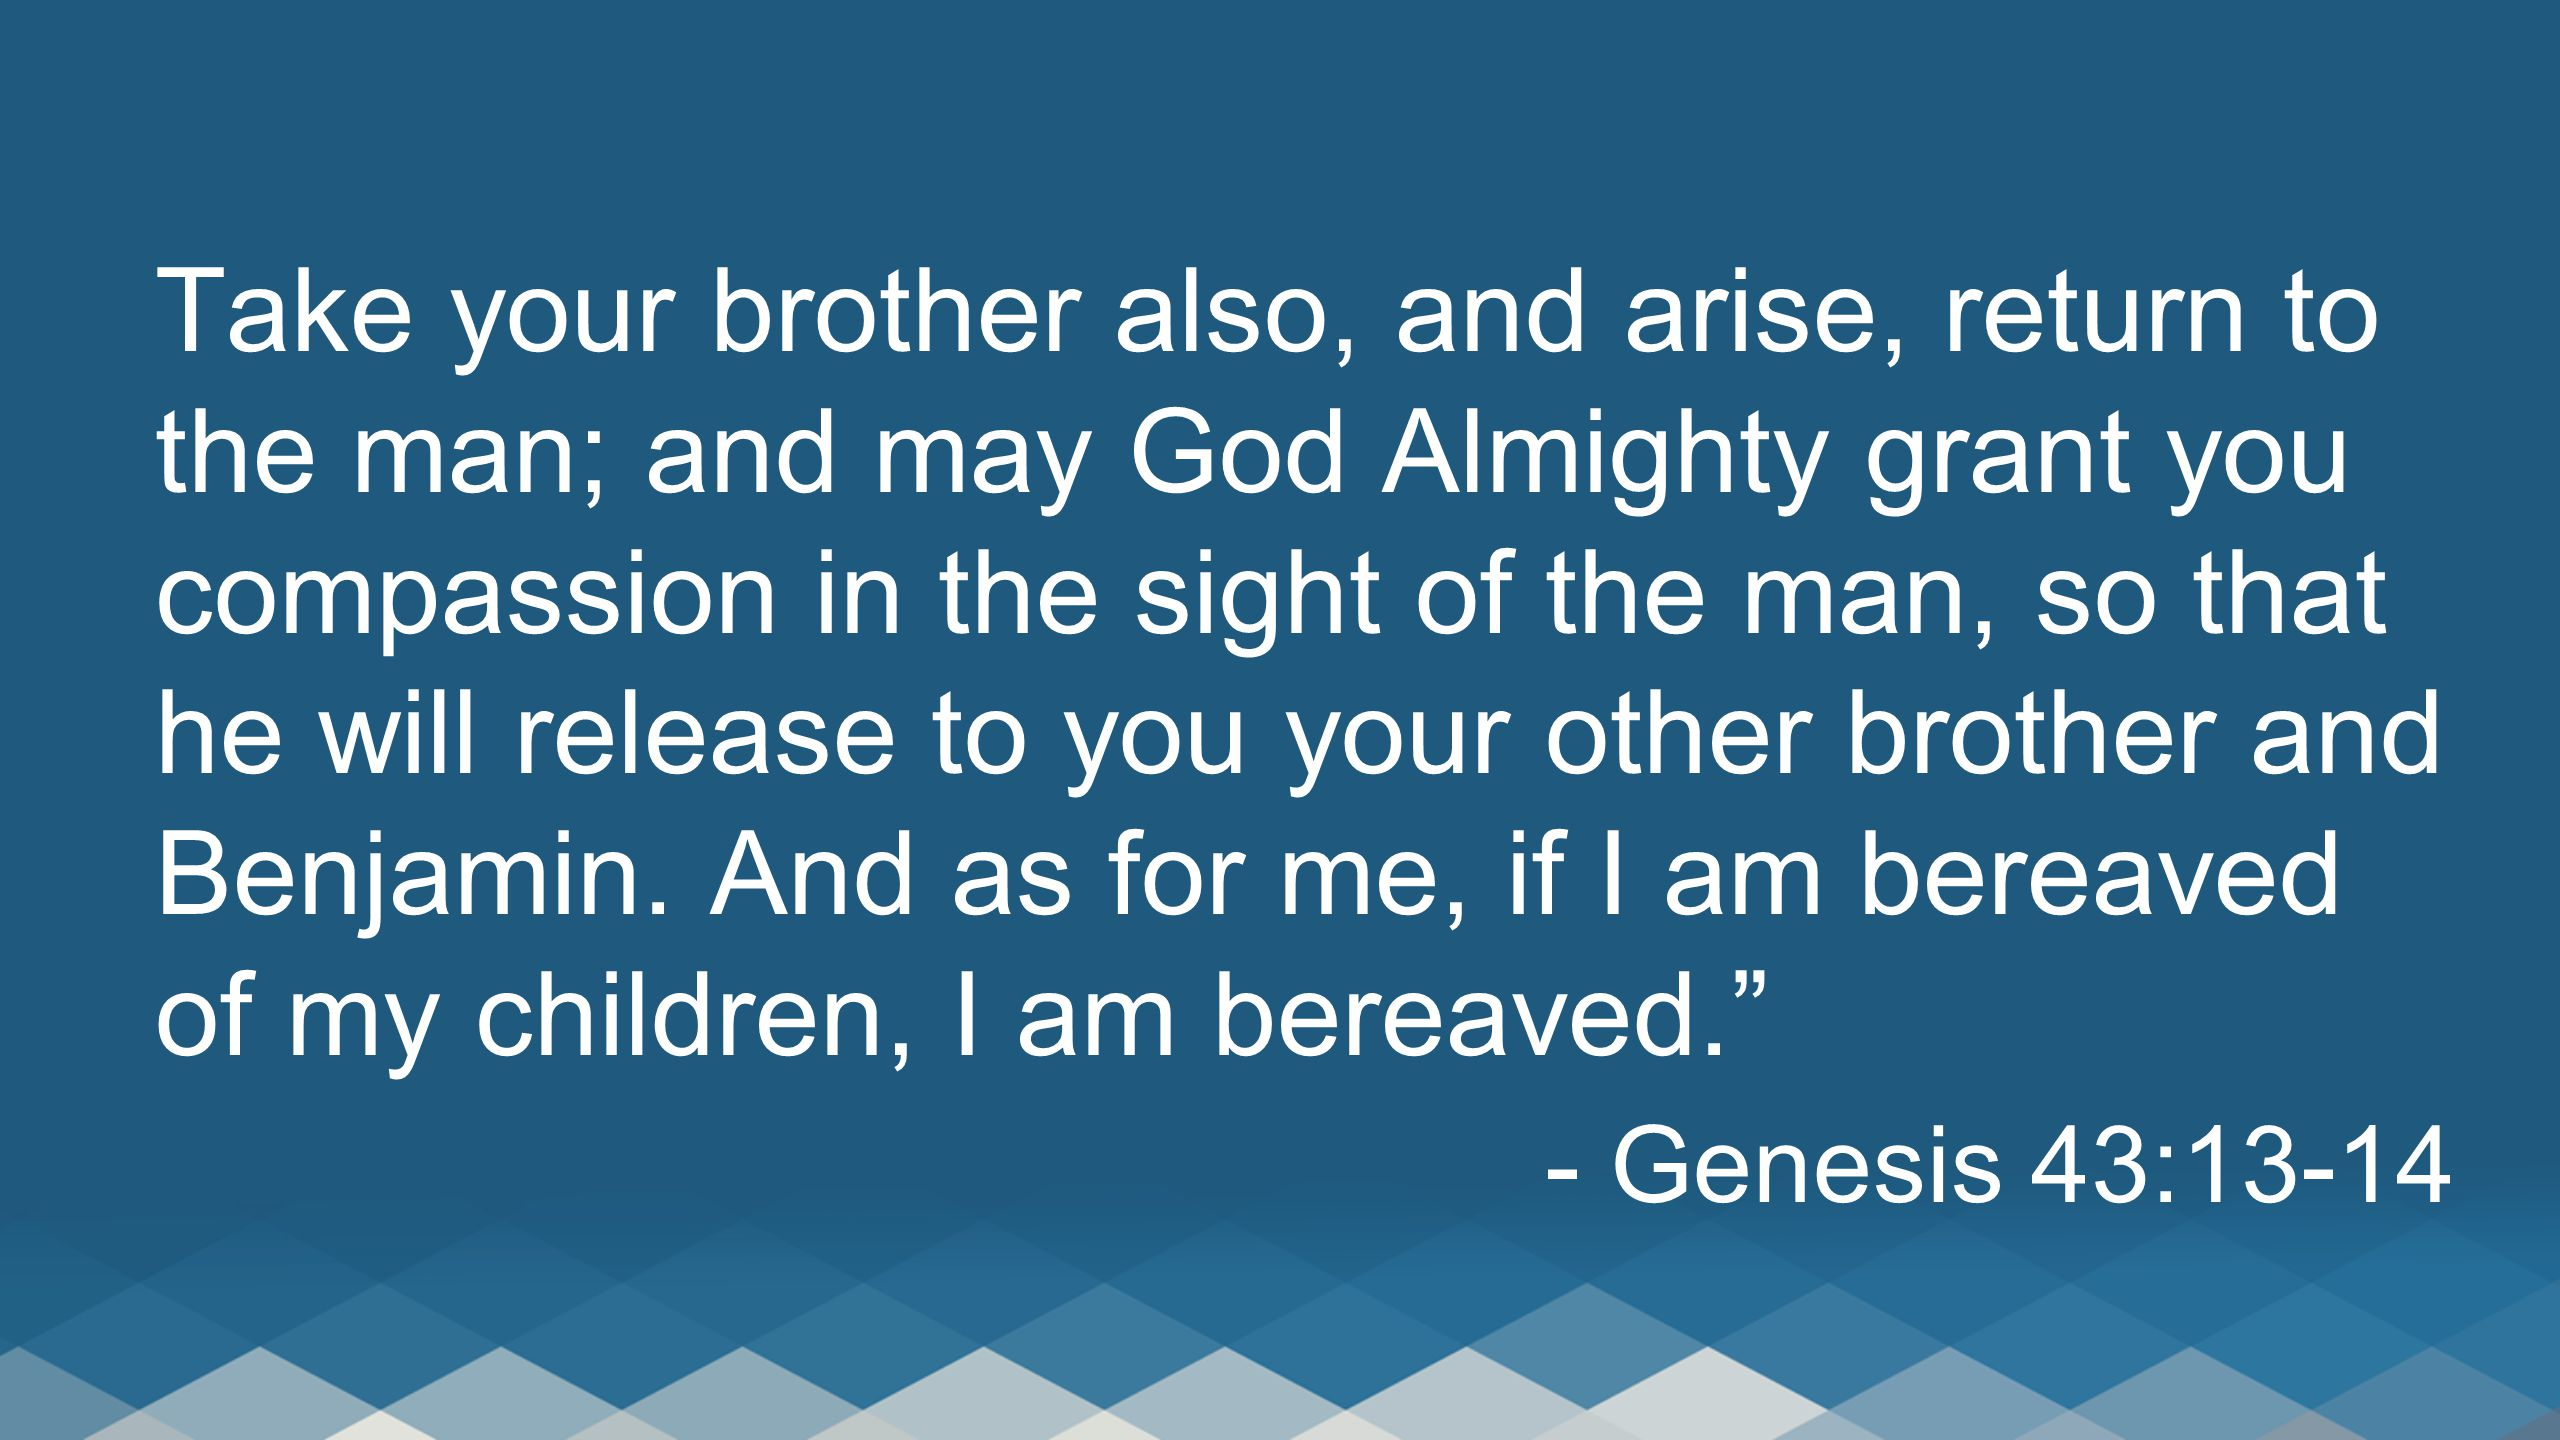 Take your brother also, and arise, return to the man; and may God Almighty grant you compassion in the sight of the man, so that he will release to you your other brother and Benjamin. And as for me, if I am bereaved of my children, I am bereaved.